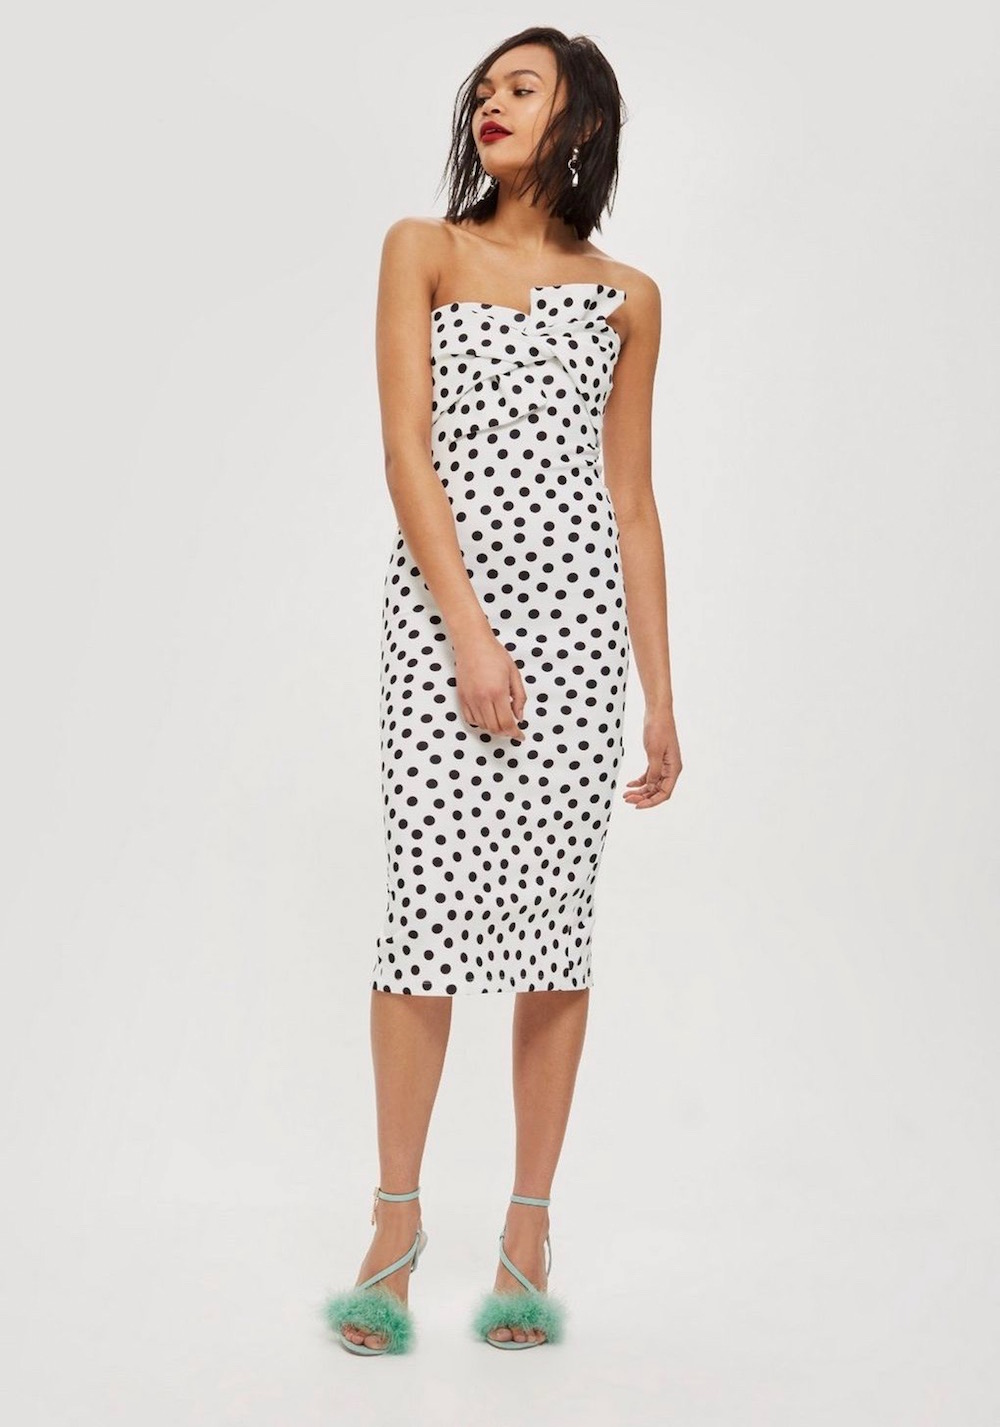 Topshop  25 Statement-Making Spring Dresses Under $100 Topshop Bow Twist Dot Midi Bodycon Dress